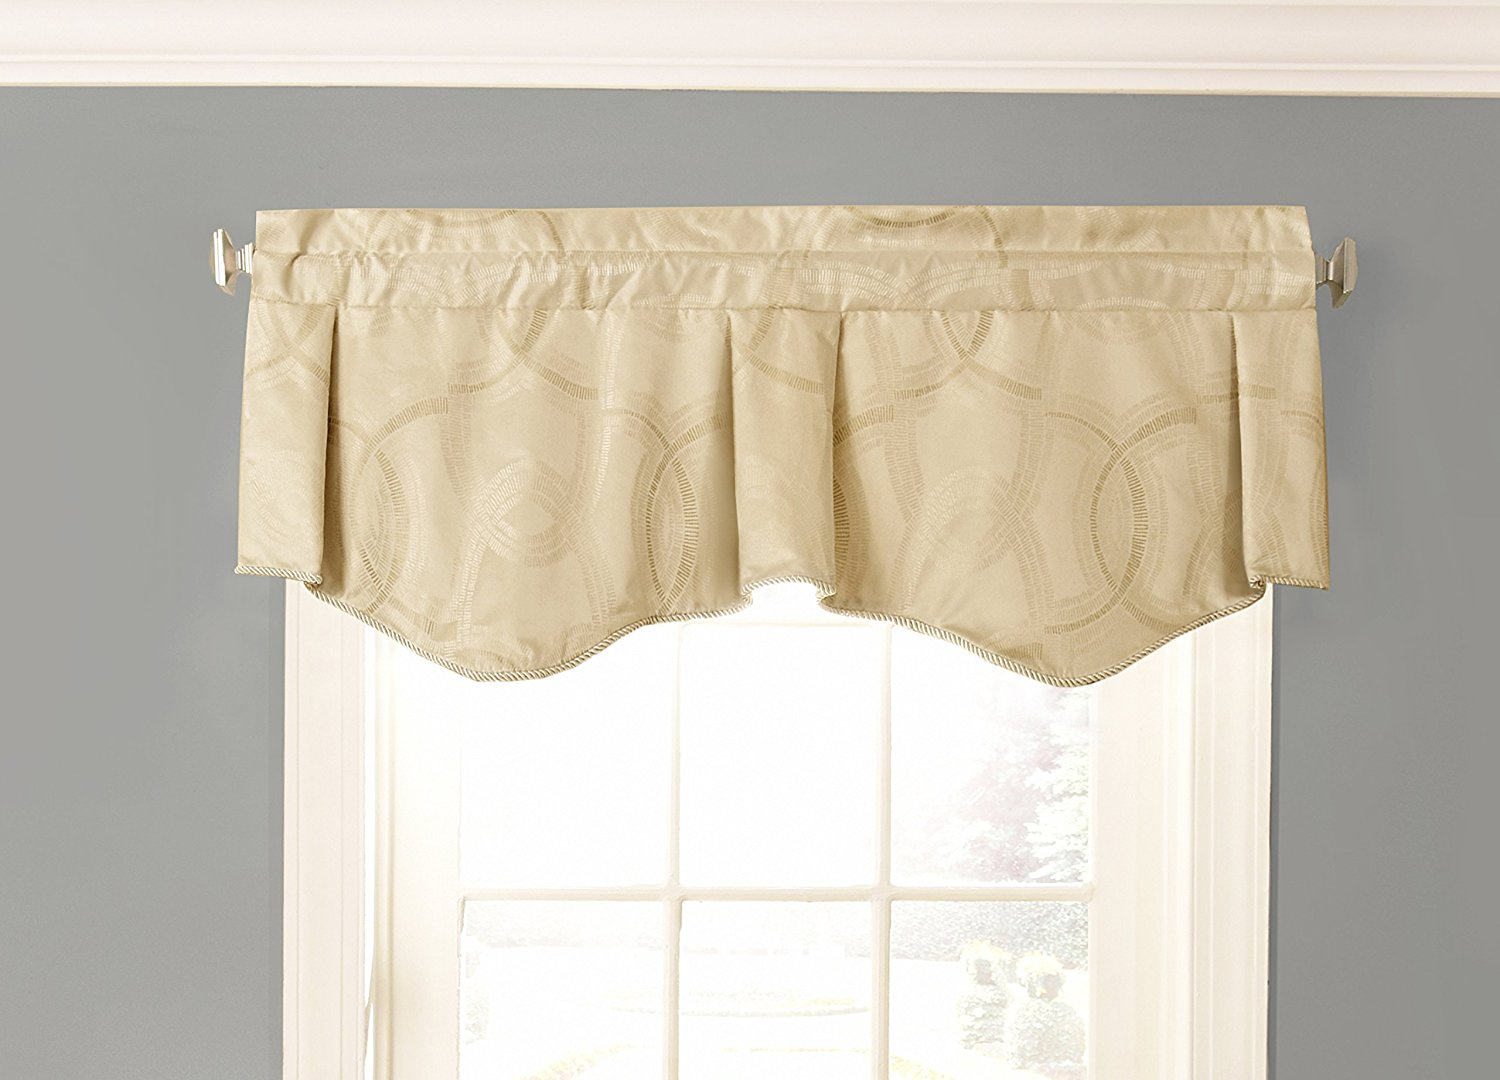 15780050x021plg odette 50 inch by 21 inch blackout single window valance pale gold 100 polyester by beautyrest from usa